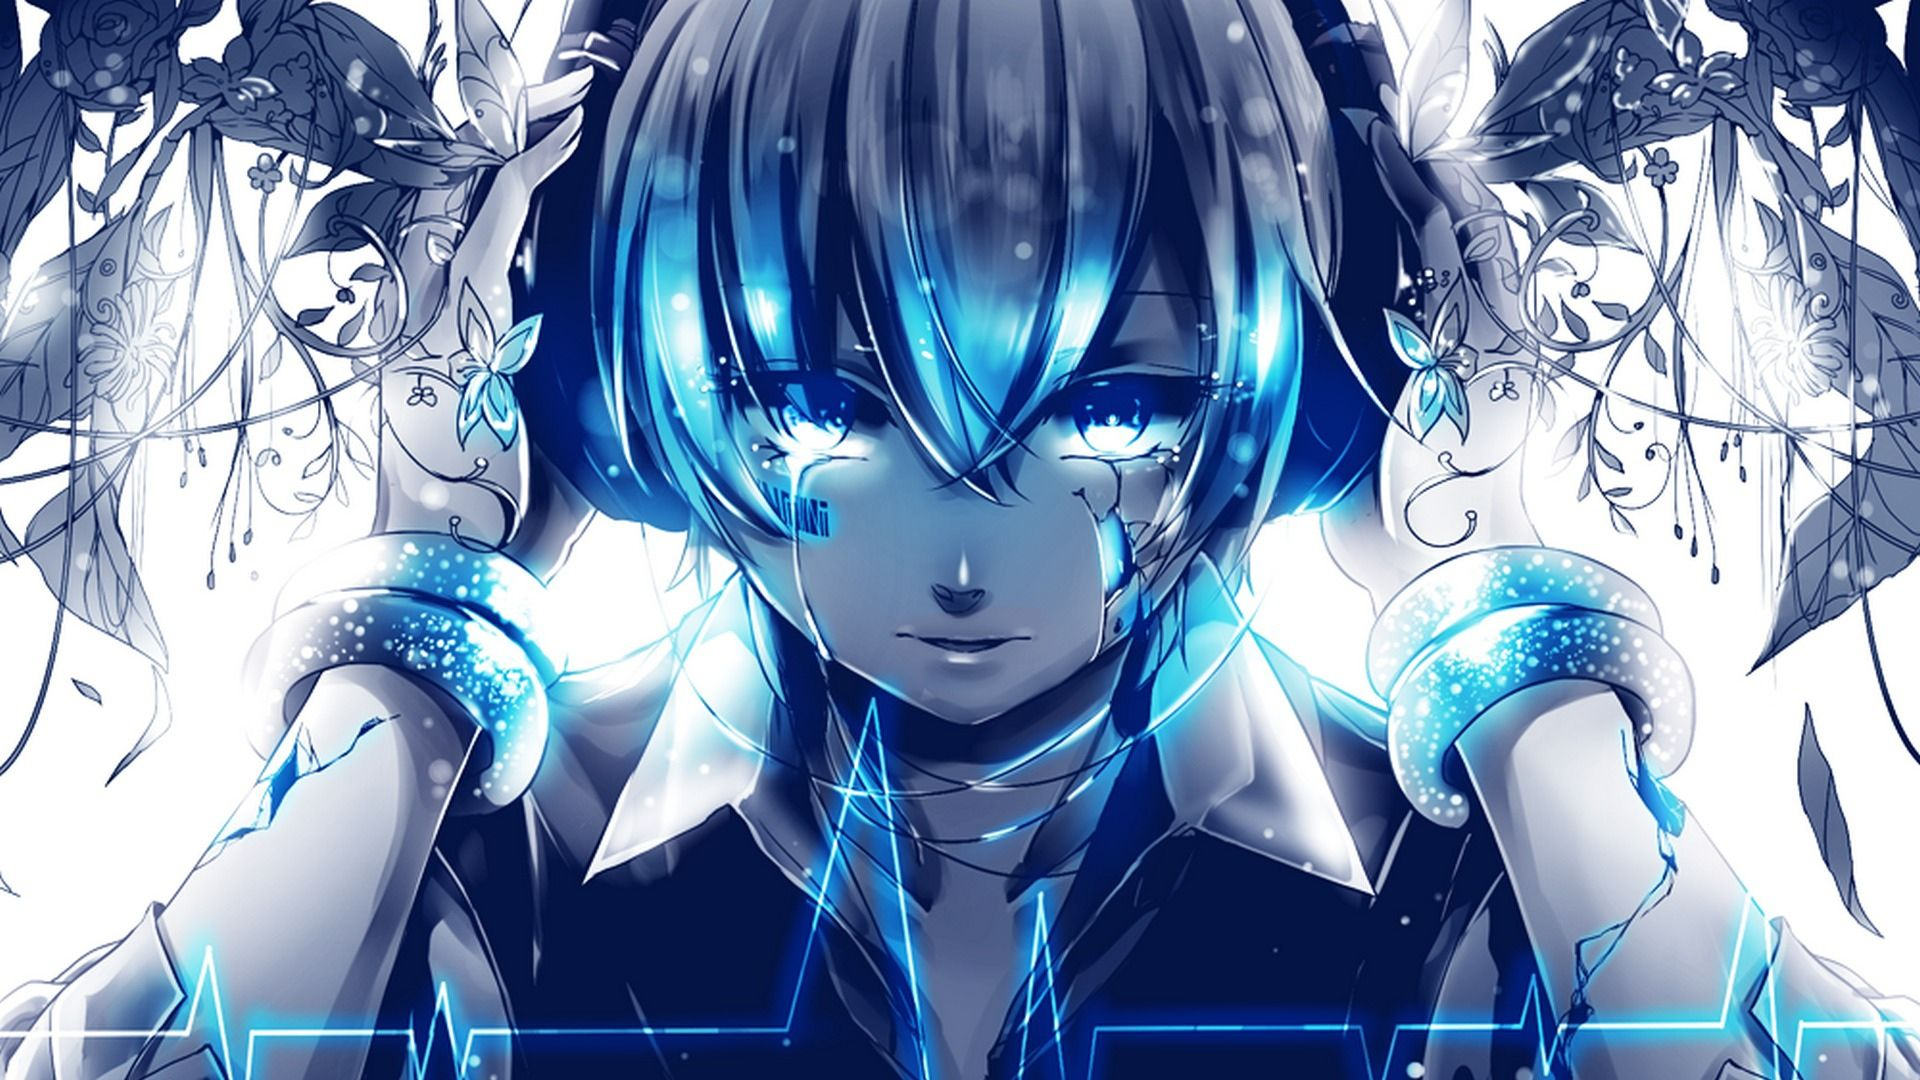 Free Vocaloid Wallpapers Download | Wallpapers, Backgrounds ... | Vocaloid | Anime, Hatsune miku ...